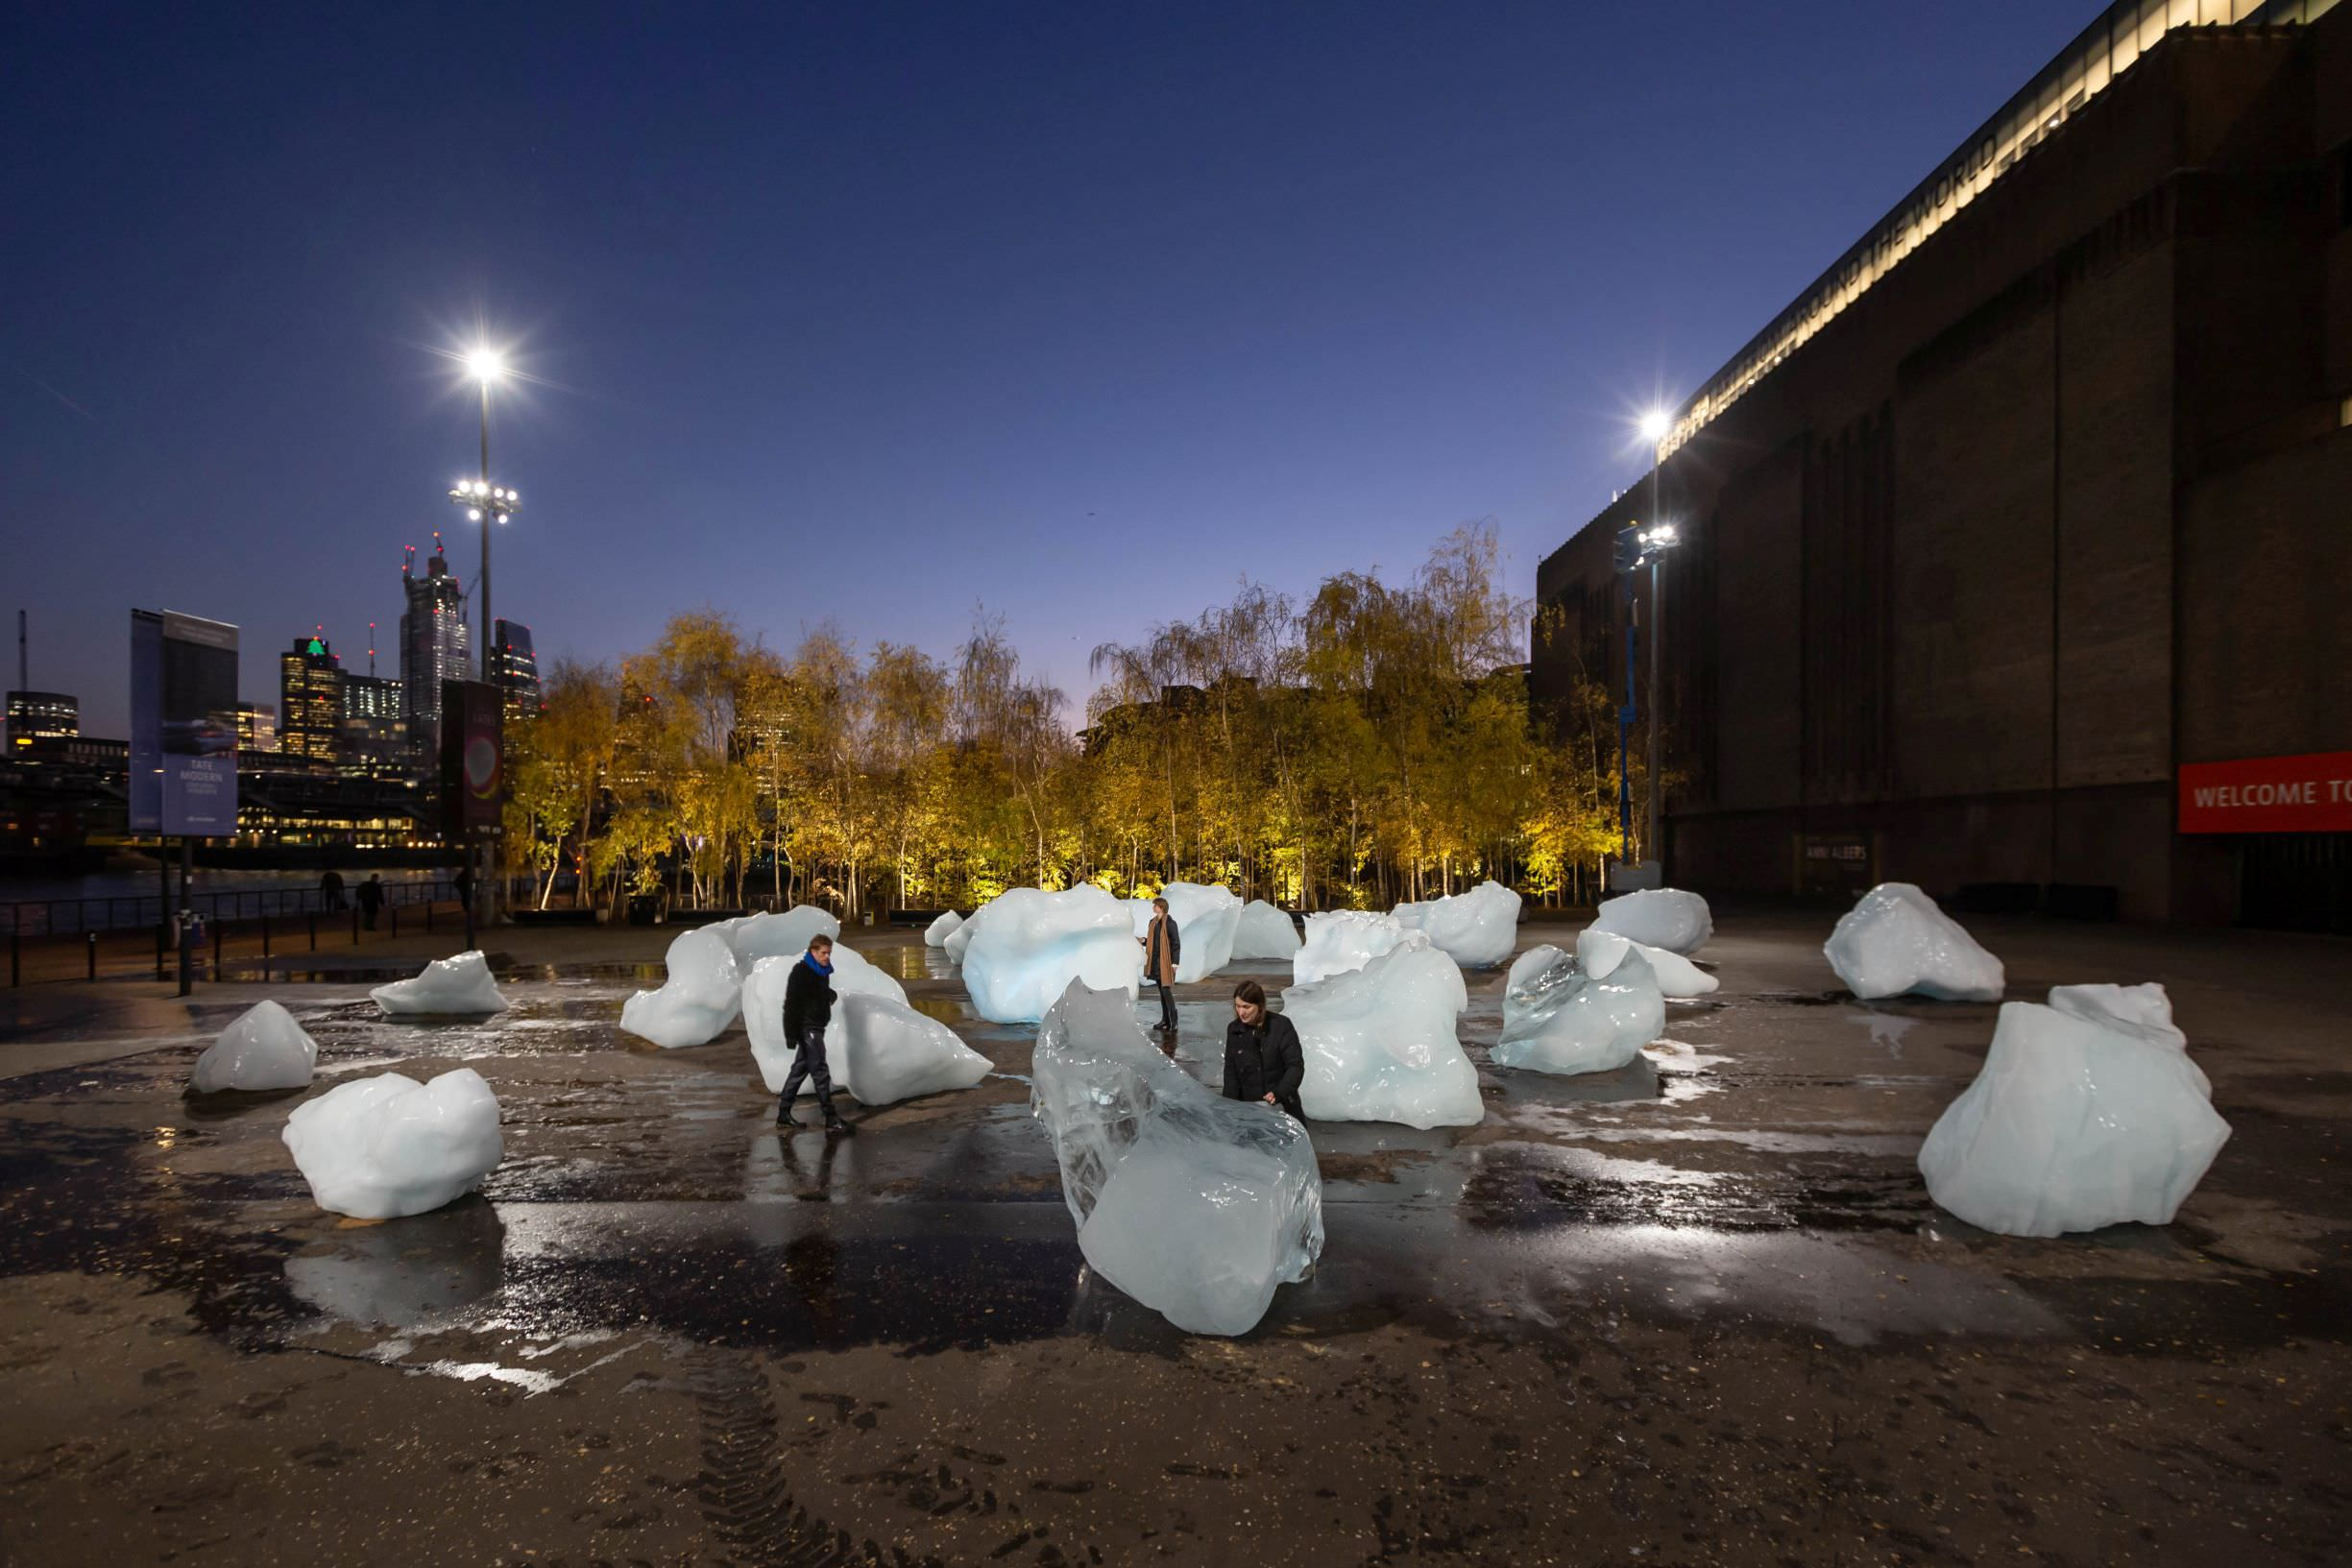 Ice Watch by Olafur Eliasson and Minik Rosing. Supported by Bloomberg. Installation: Bankside, outside Tate Modern, 2018. Photo: Justin Sutcliffe © 2018 Olafur Eliasson